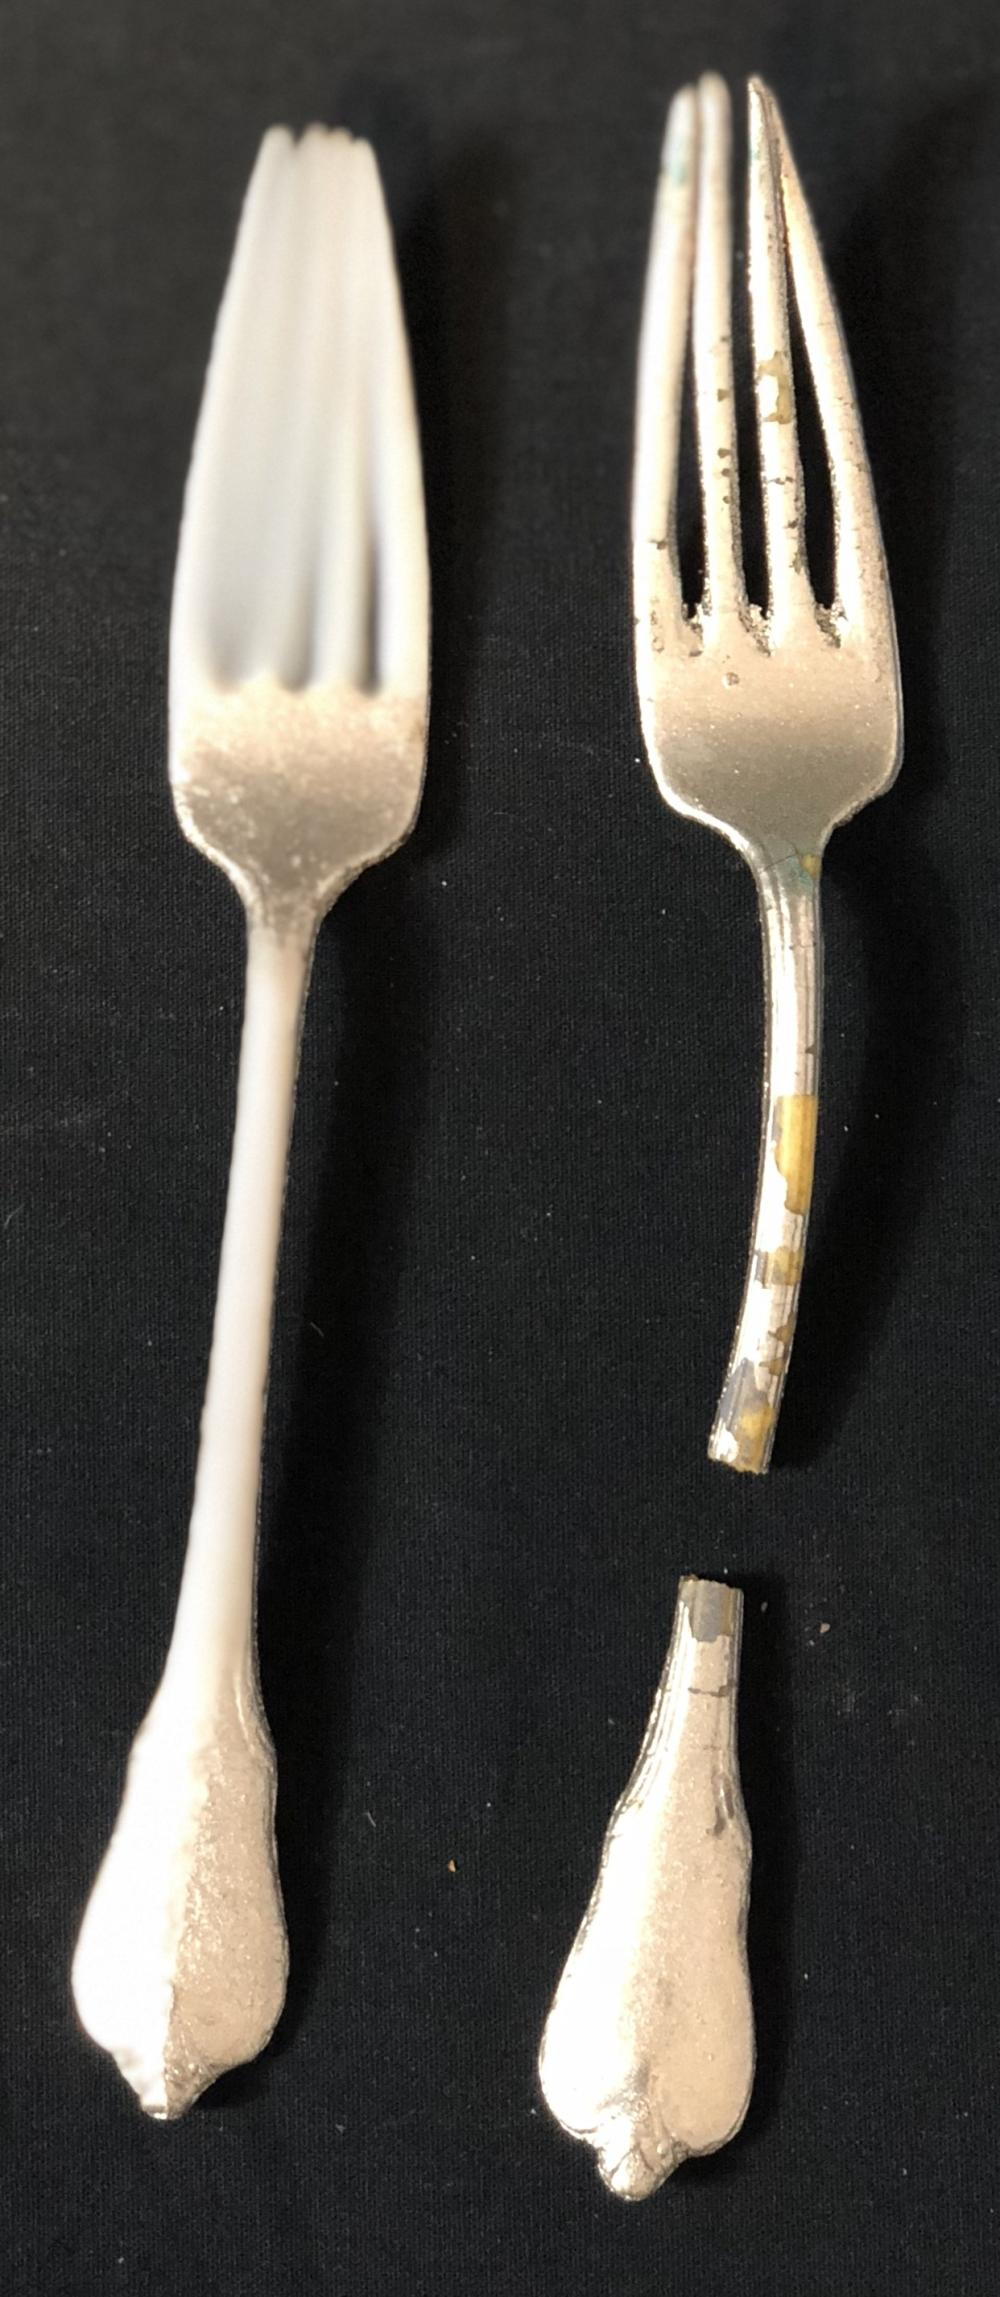 """Hot Shots! Part Deux (1993) - Set of 2 Resin Flatware Pieces From """"Lady and the Tramp"""" Scene"""